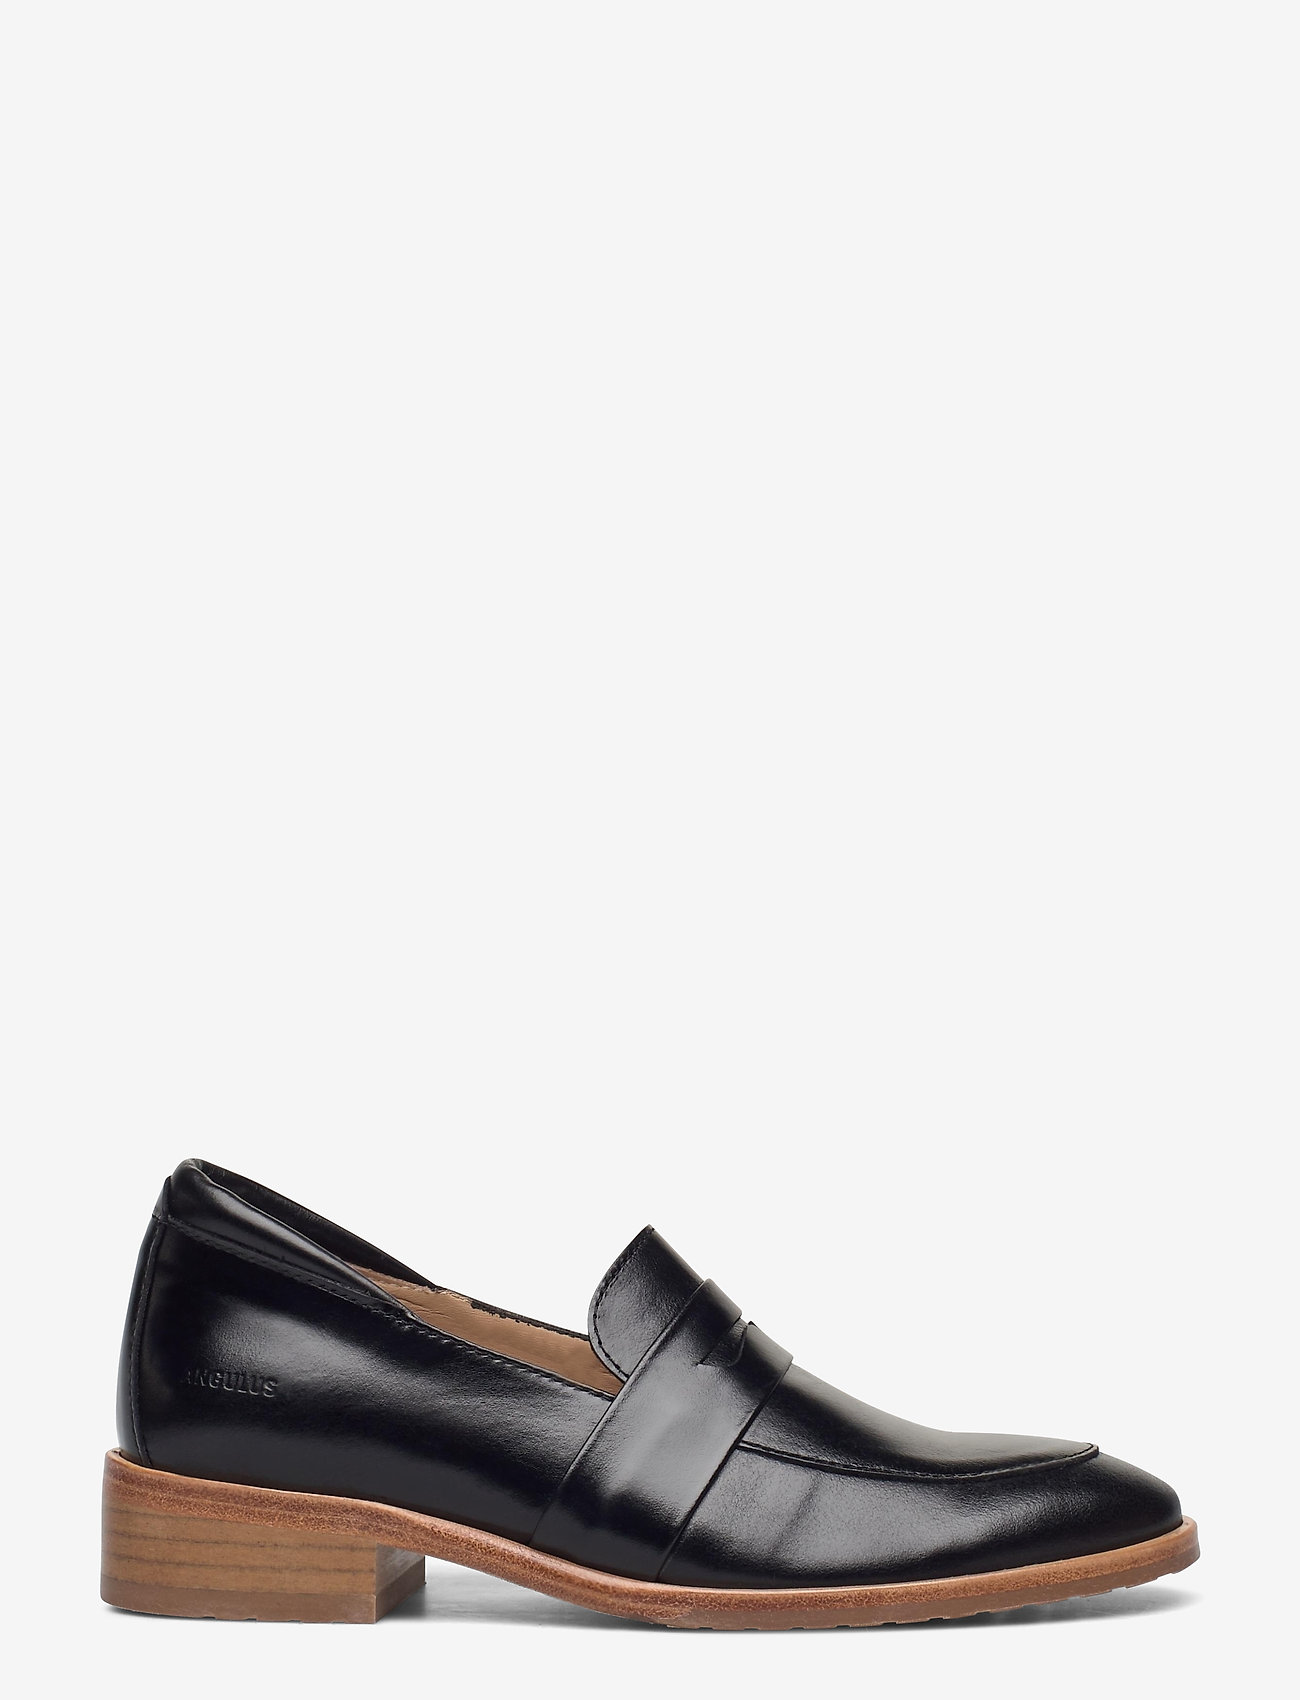 ANGULUS - Loafer - flat - loafers - 1835 black - 1